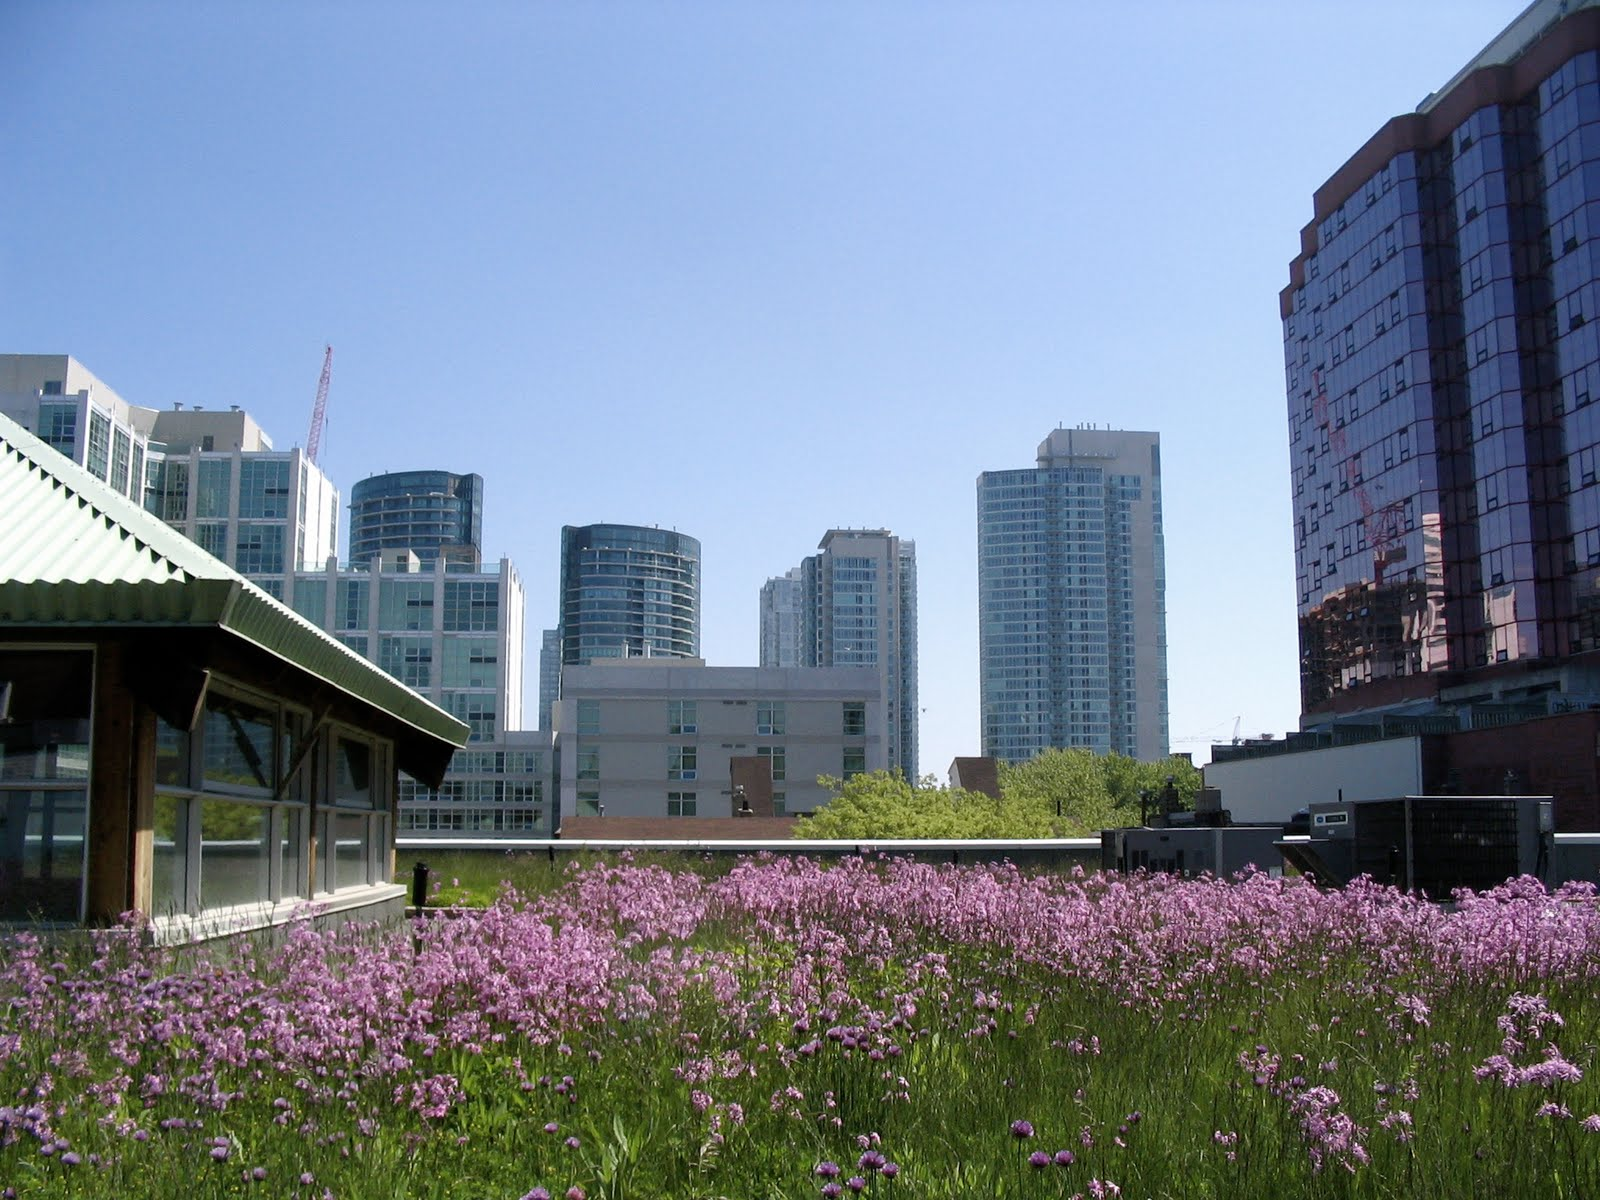 Melbourne curious ch2 39 s rooftop garden success or failure - Build green roof nature home ...